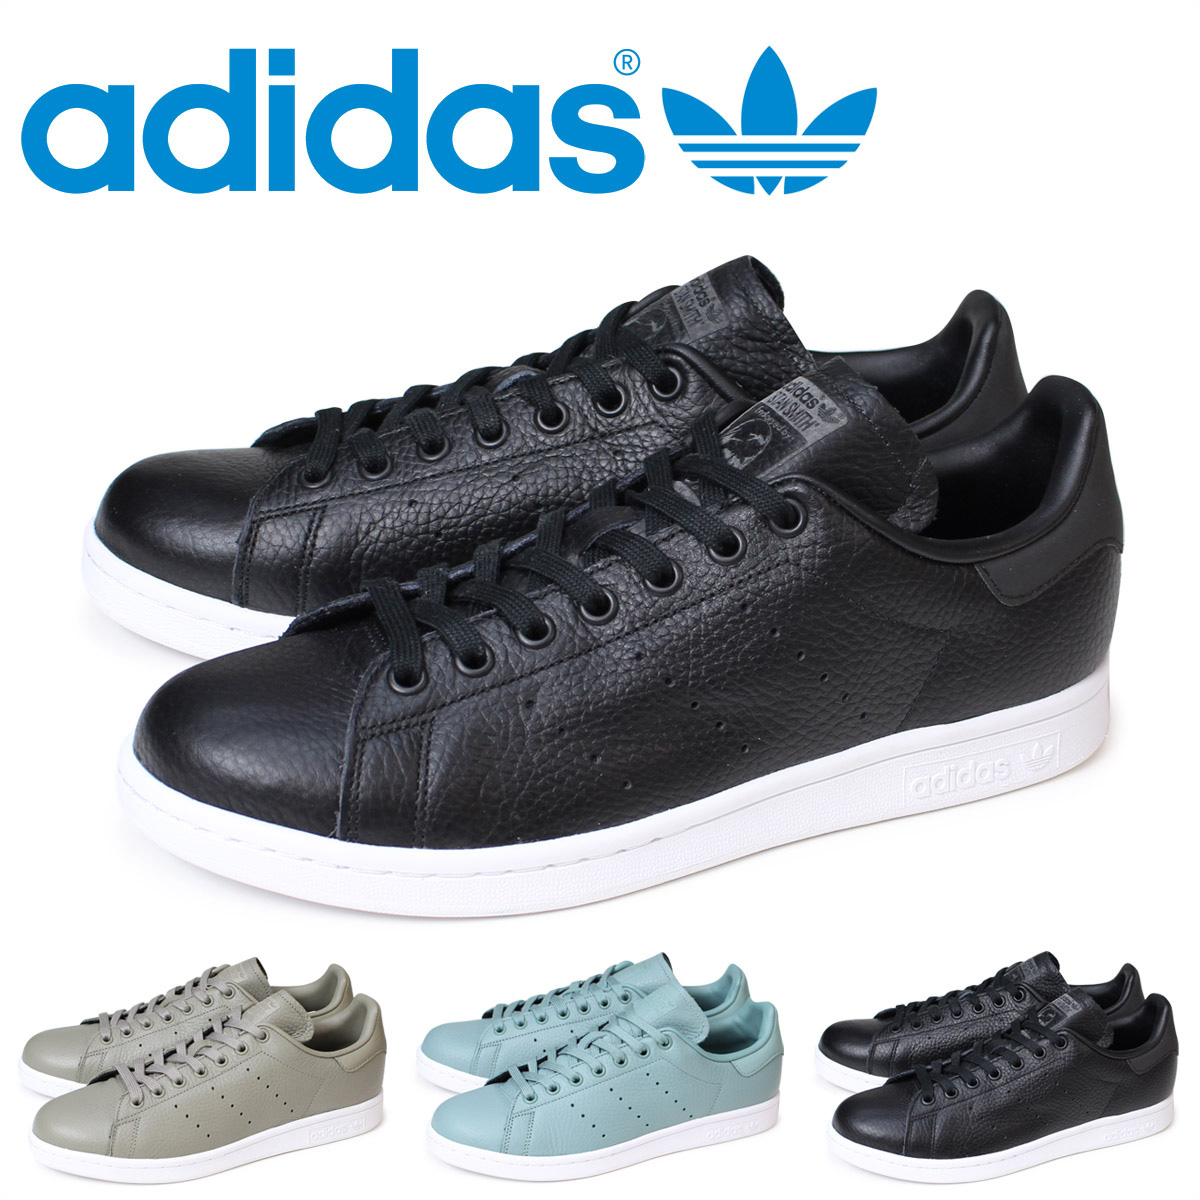 adidas Stan Smith Adidas Originals sneakers STAN SMITH men BB0053 BB0054 BB0055 shoes